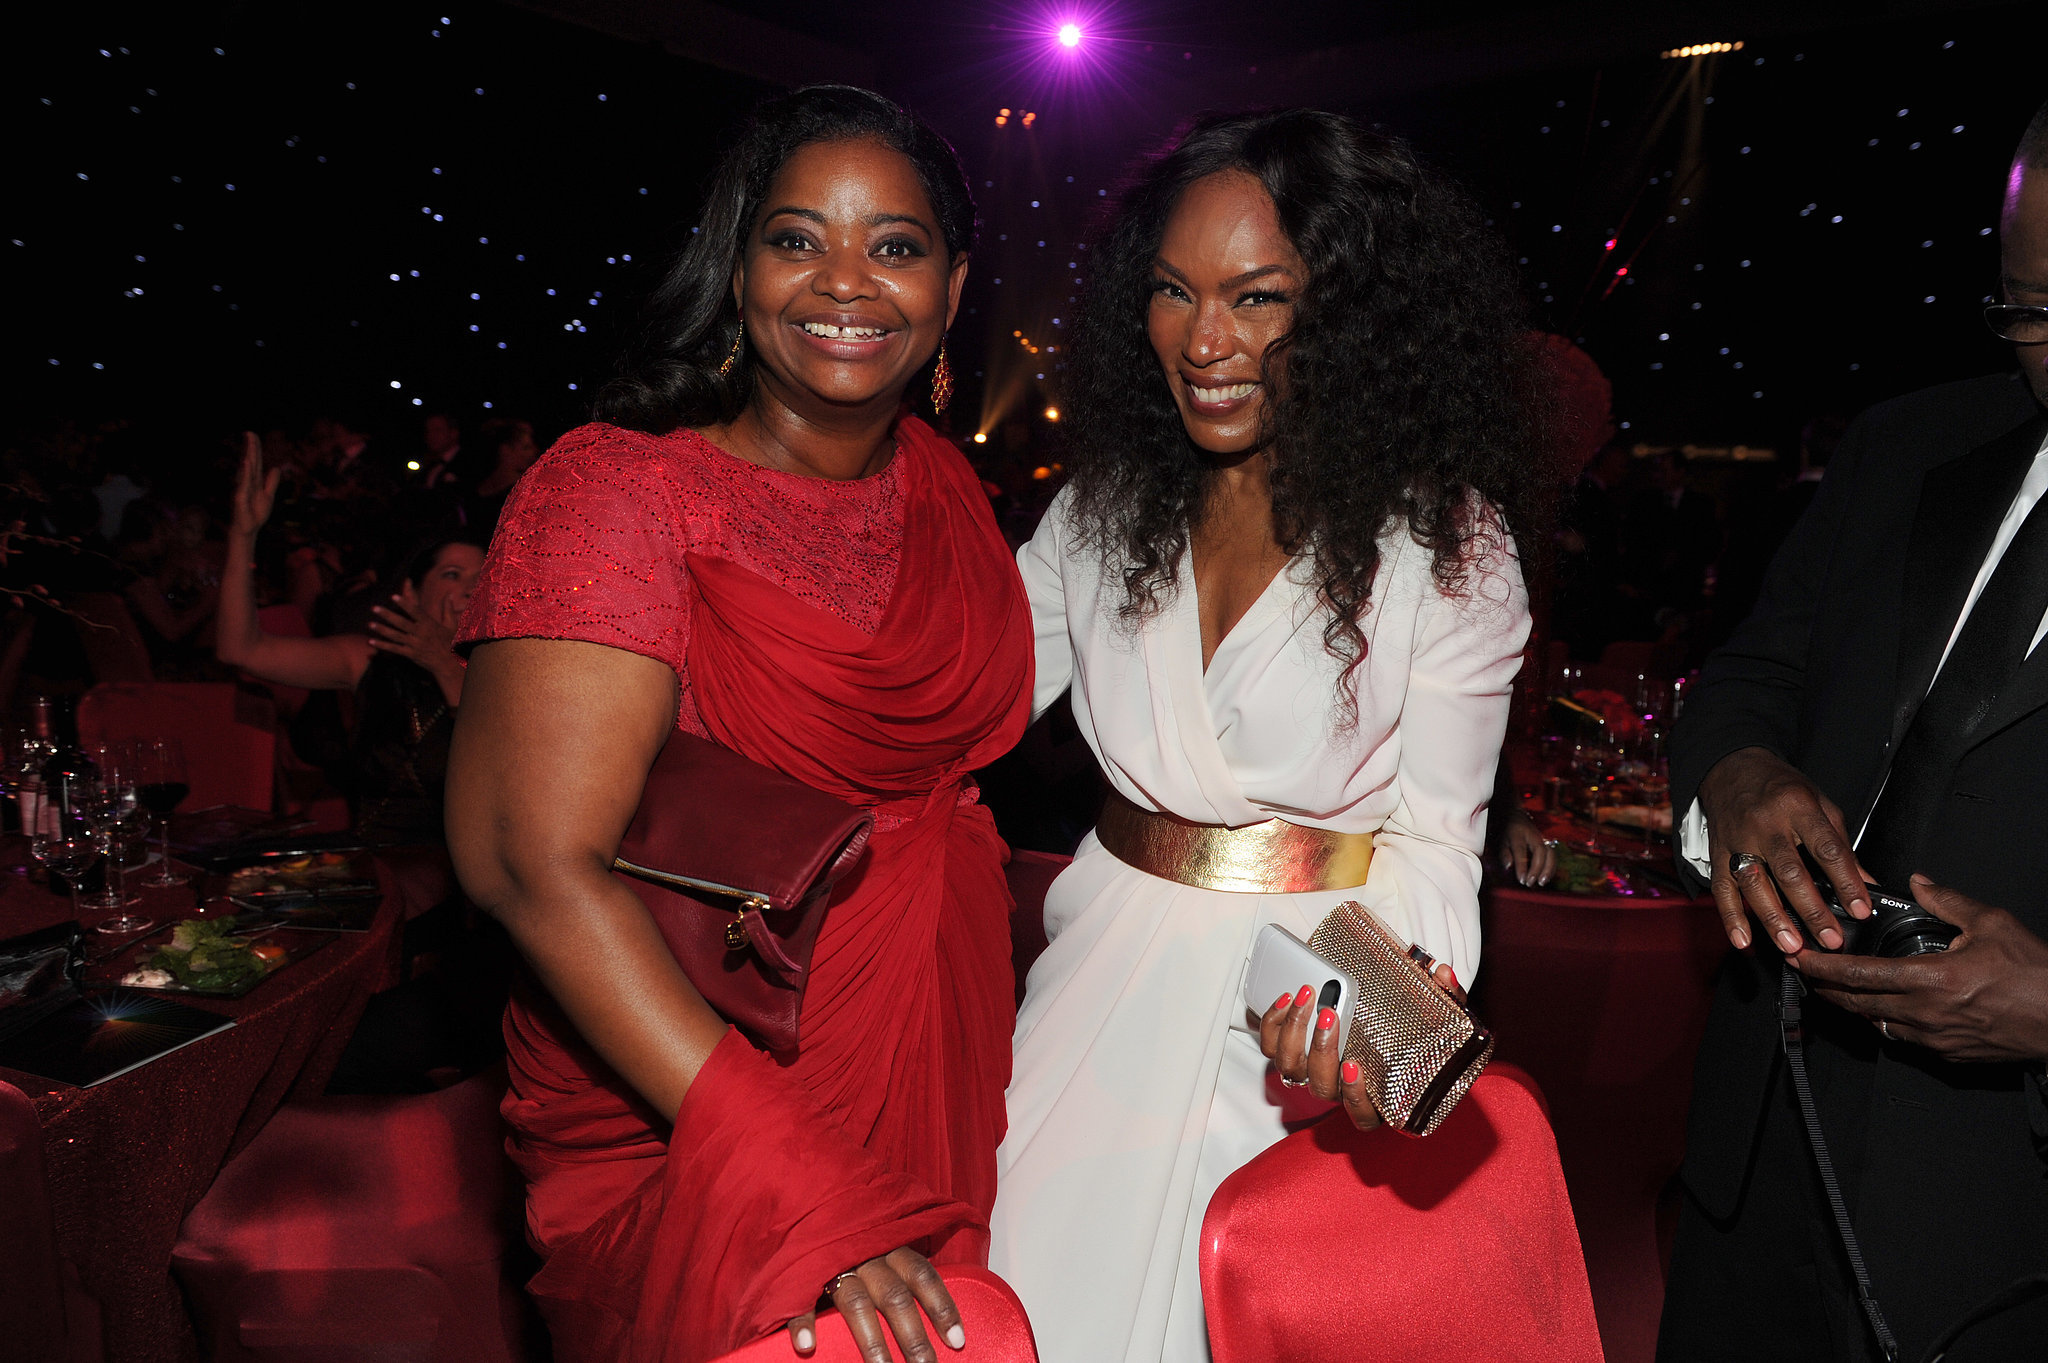 Octavia Spencer and Angela Bassett were all smiles at the Governors Ball.